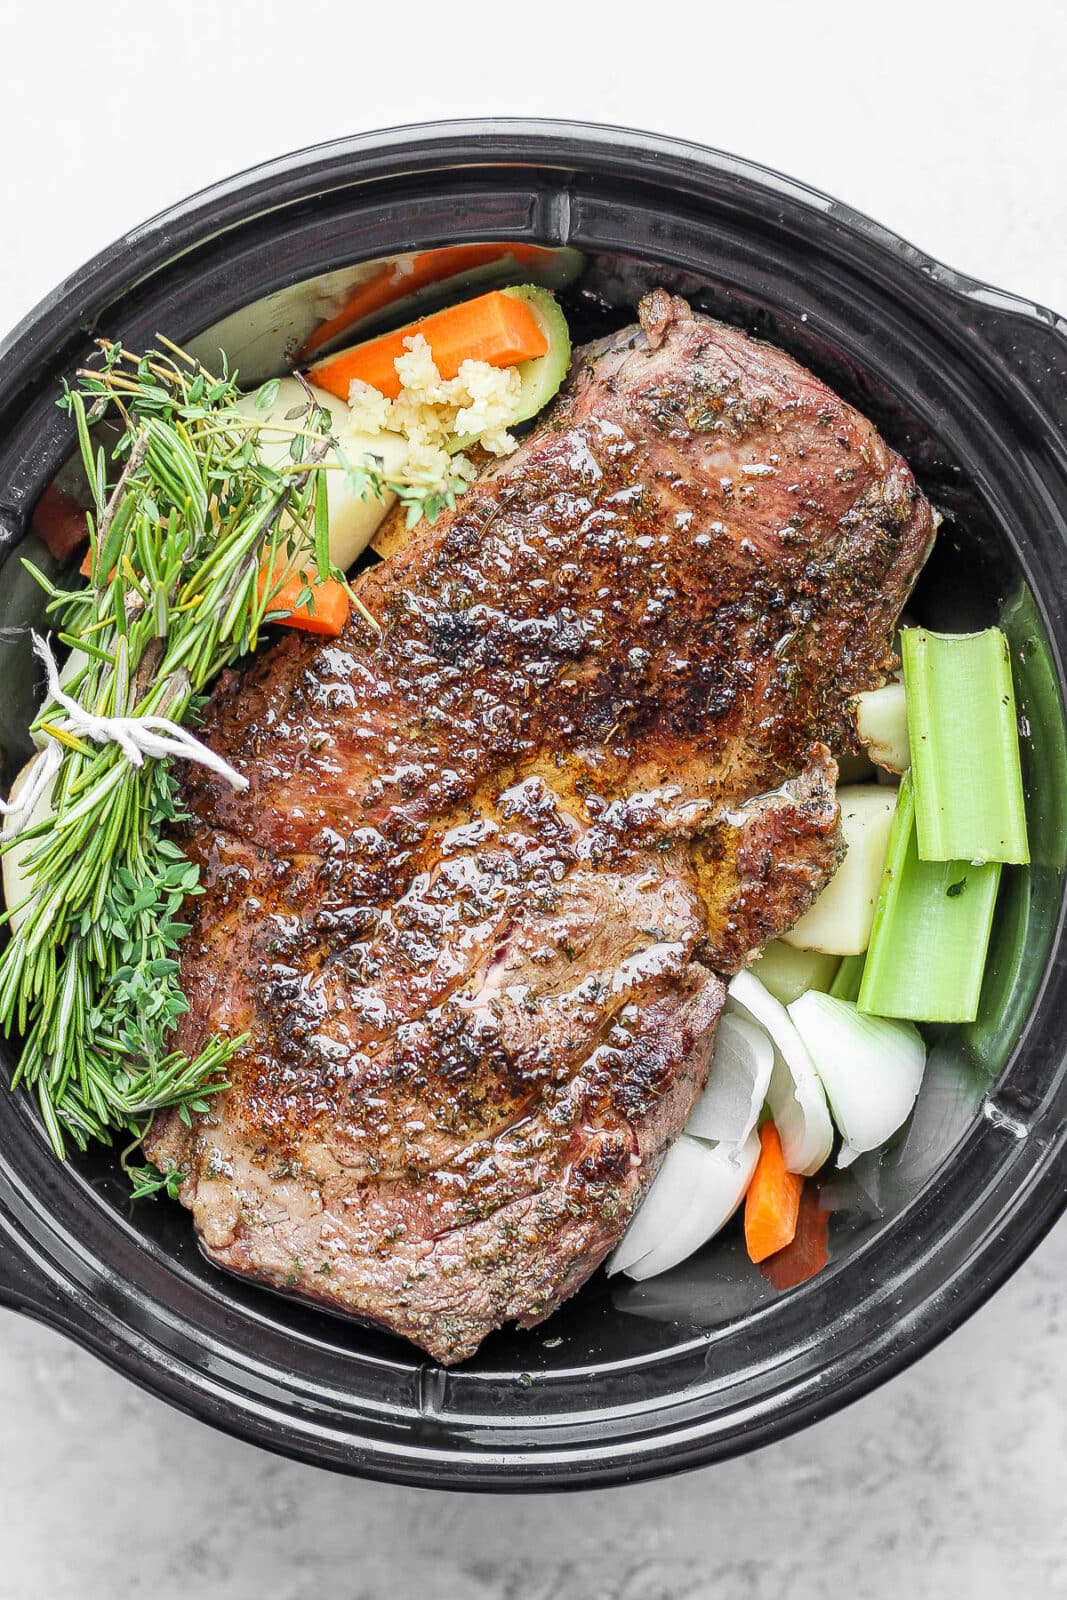 Slow cooker with pot roast, veggies, and herbs.